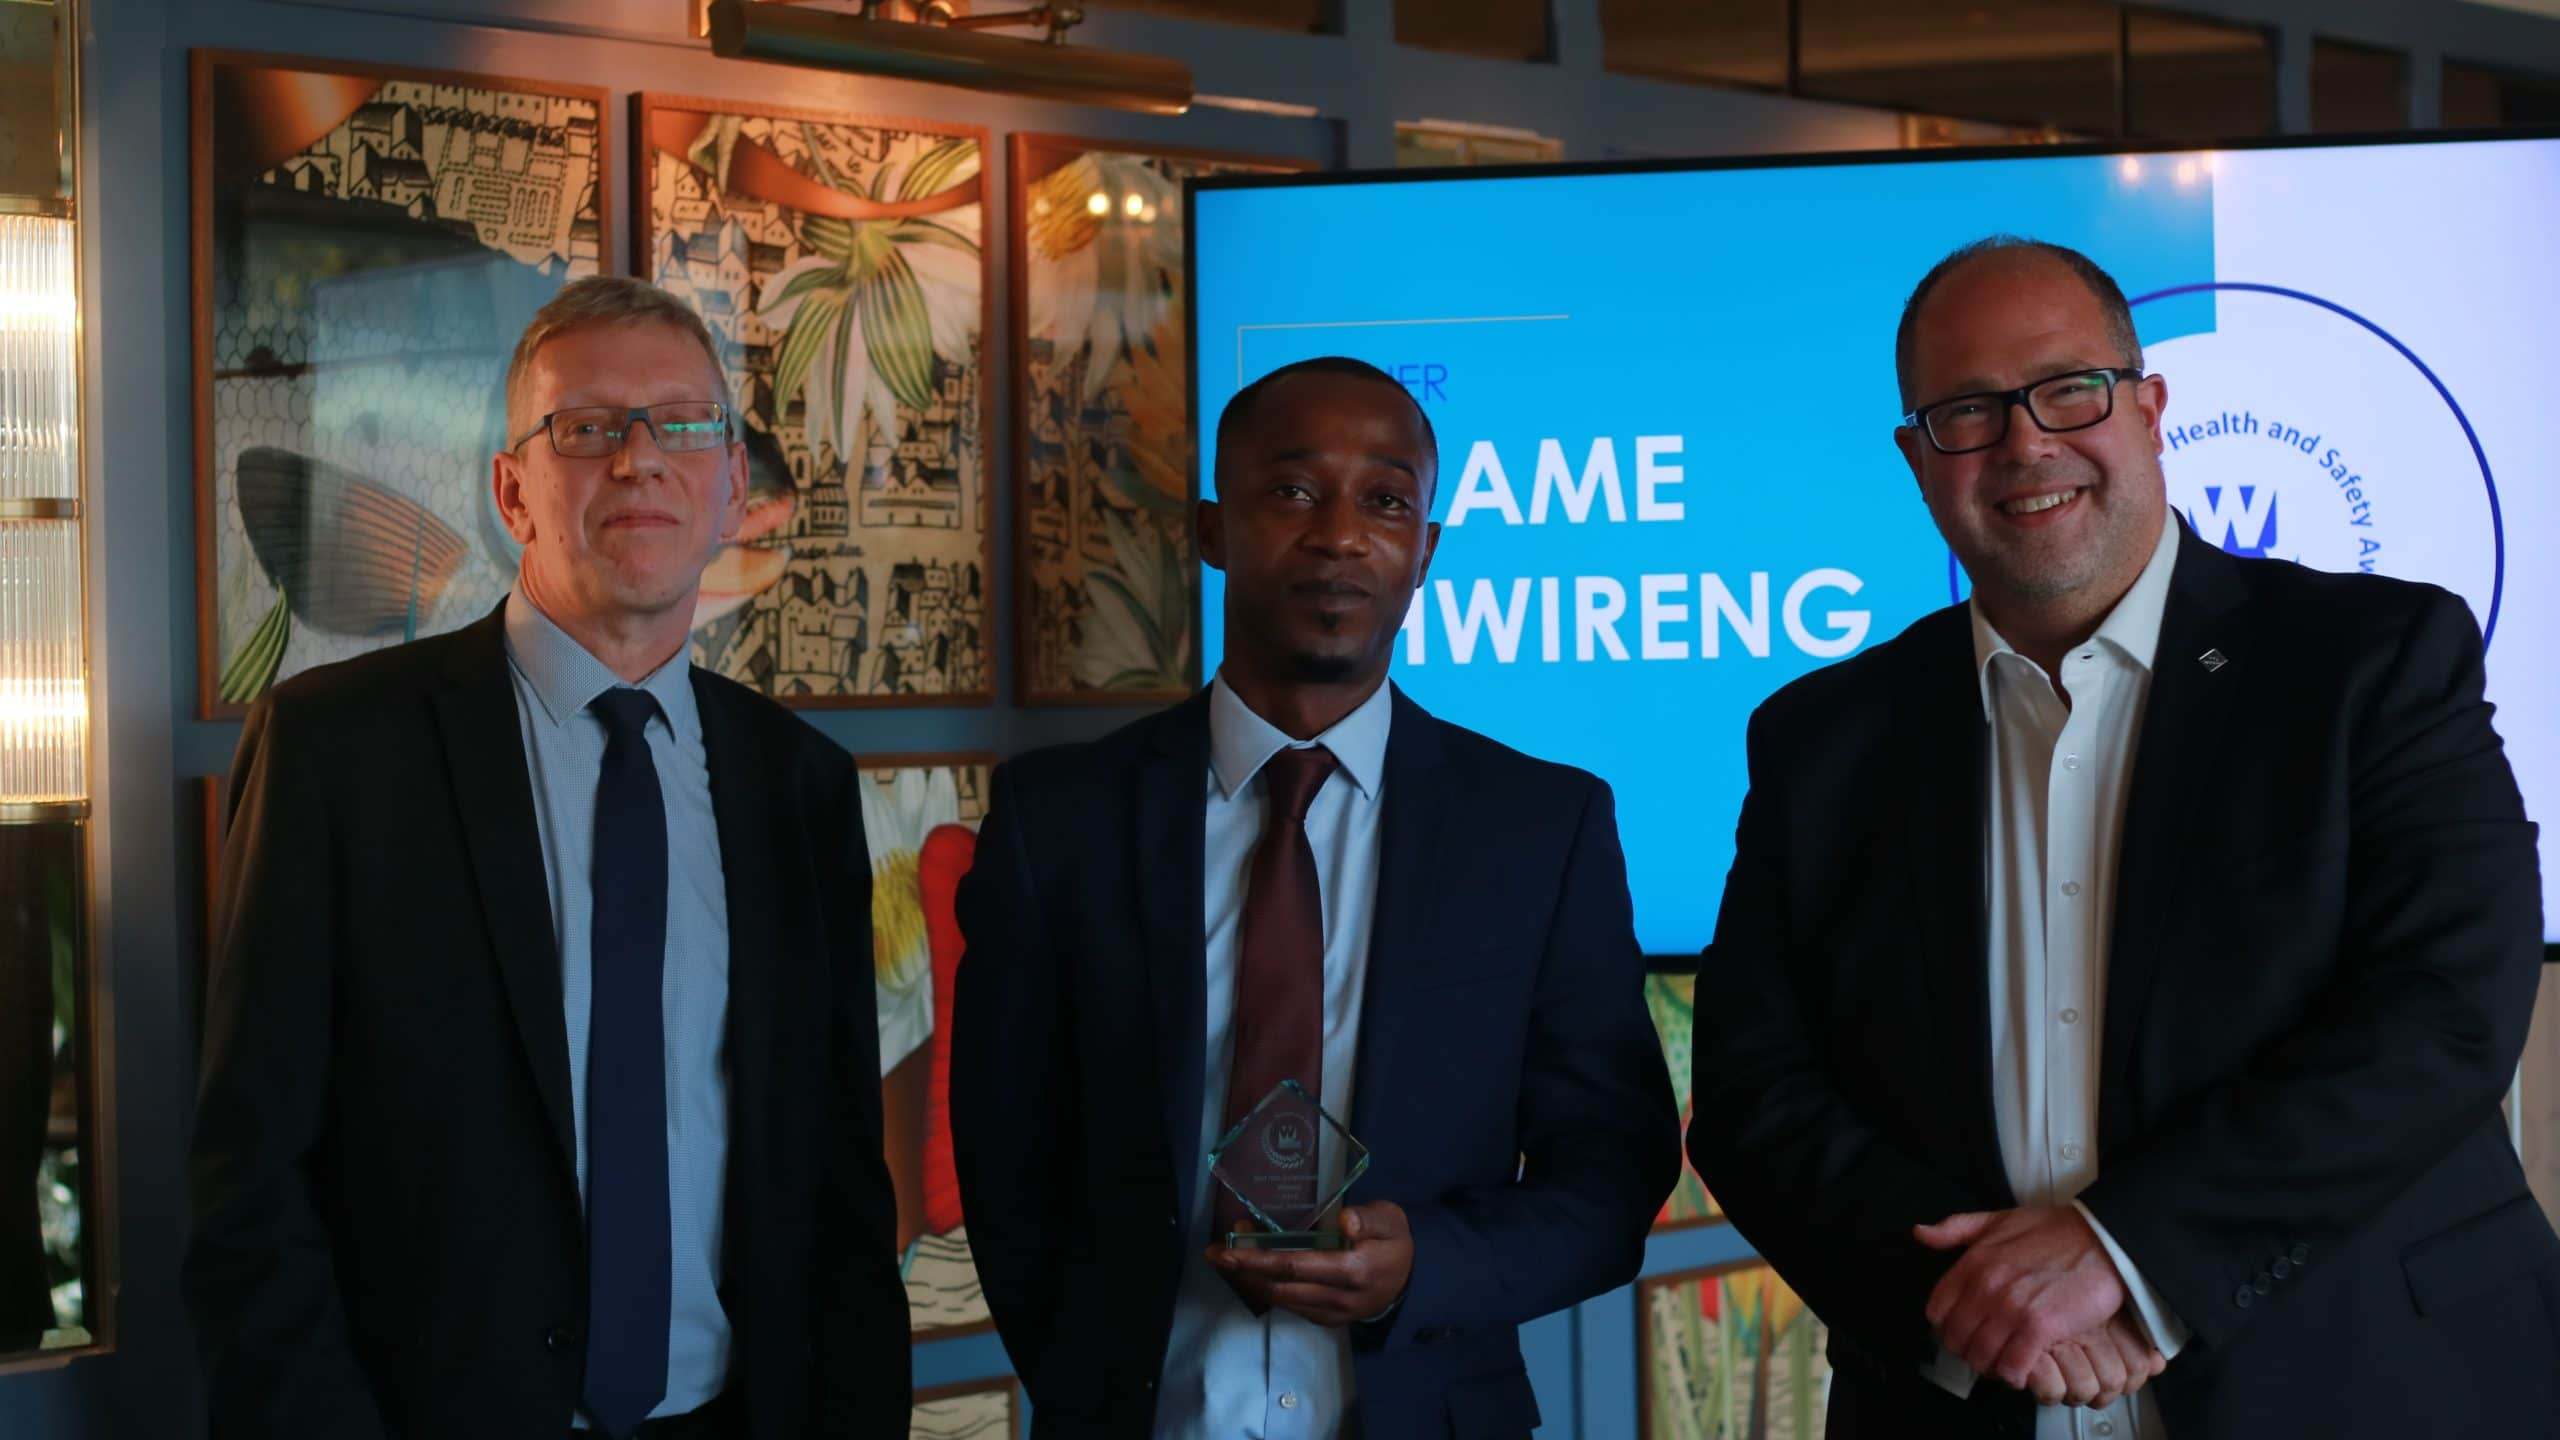 BEST SITE IMPROVEMENT: KWAME AHWIRENG